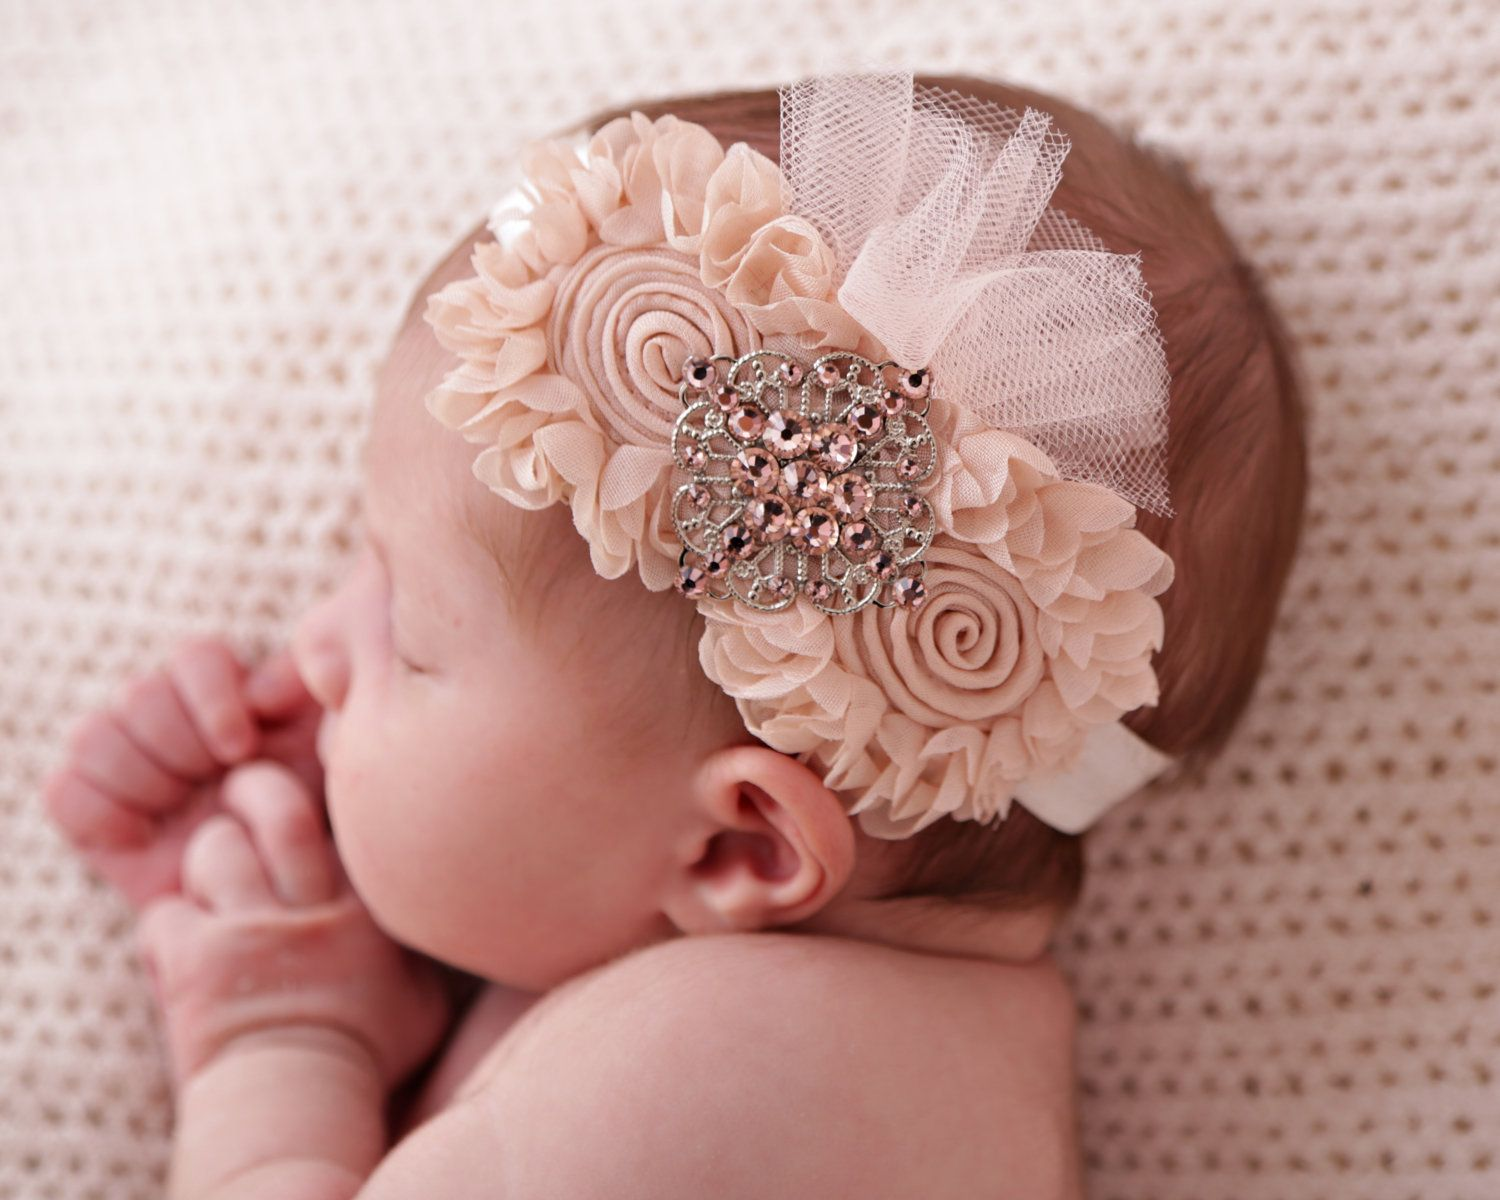 Items Similar To Chic Baby Fabric Flower Headband Peachy Color Newborn Baby Girl Girls Photogra Fabric Flower Headbands Fabric Flowers Baby Girl Headbands